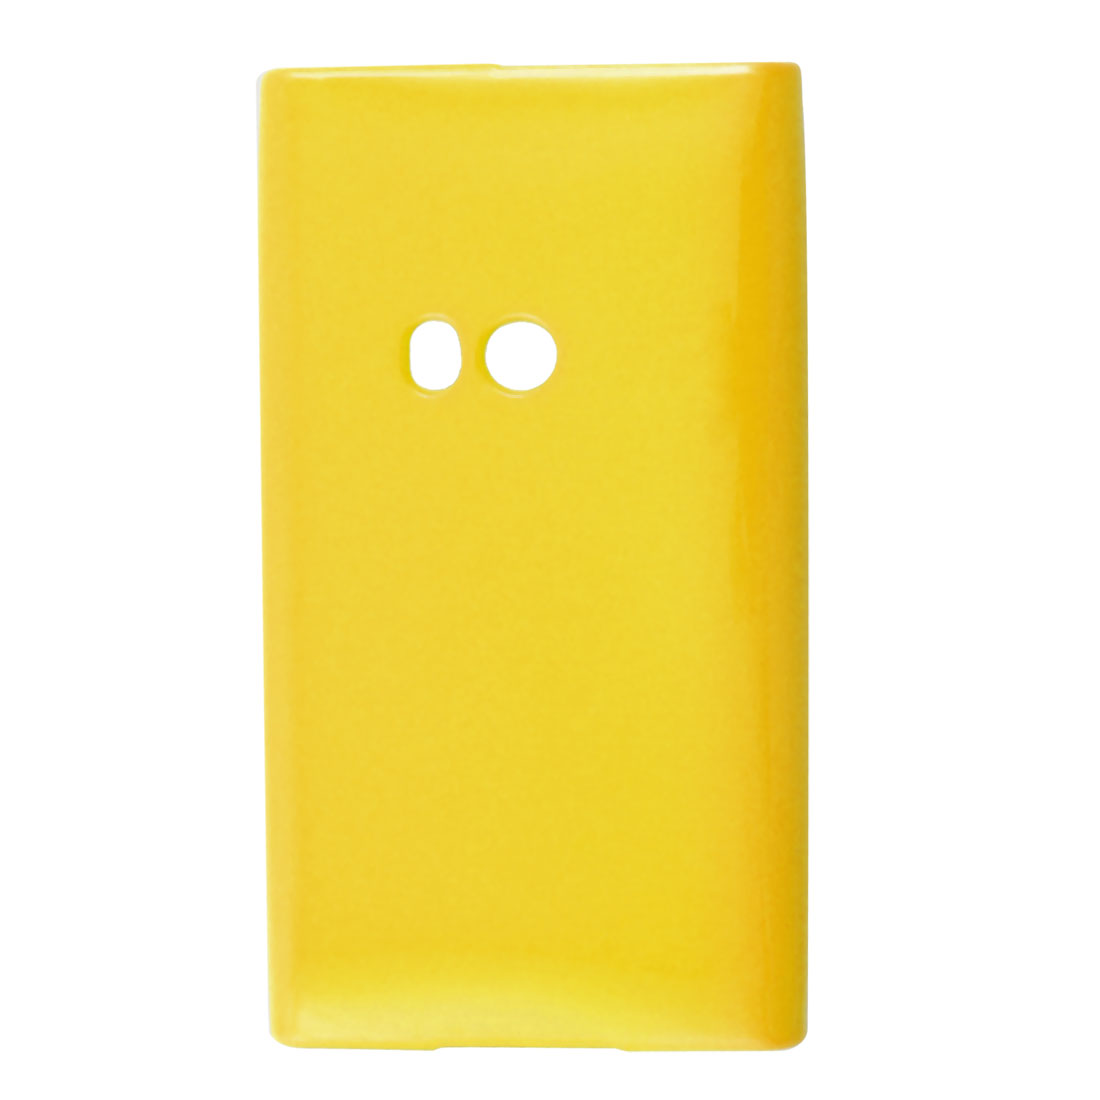 Yellow Soft Plastic Case Protector Guard for Nokia N9